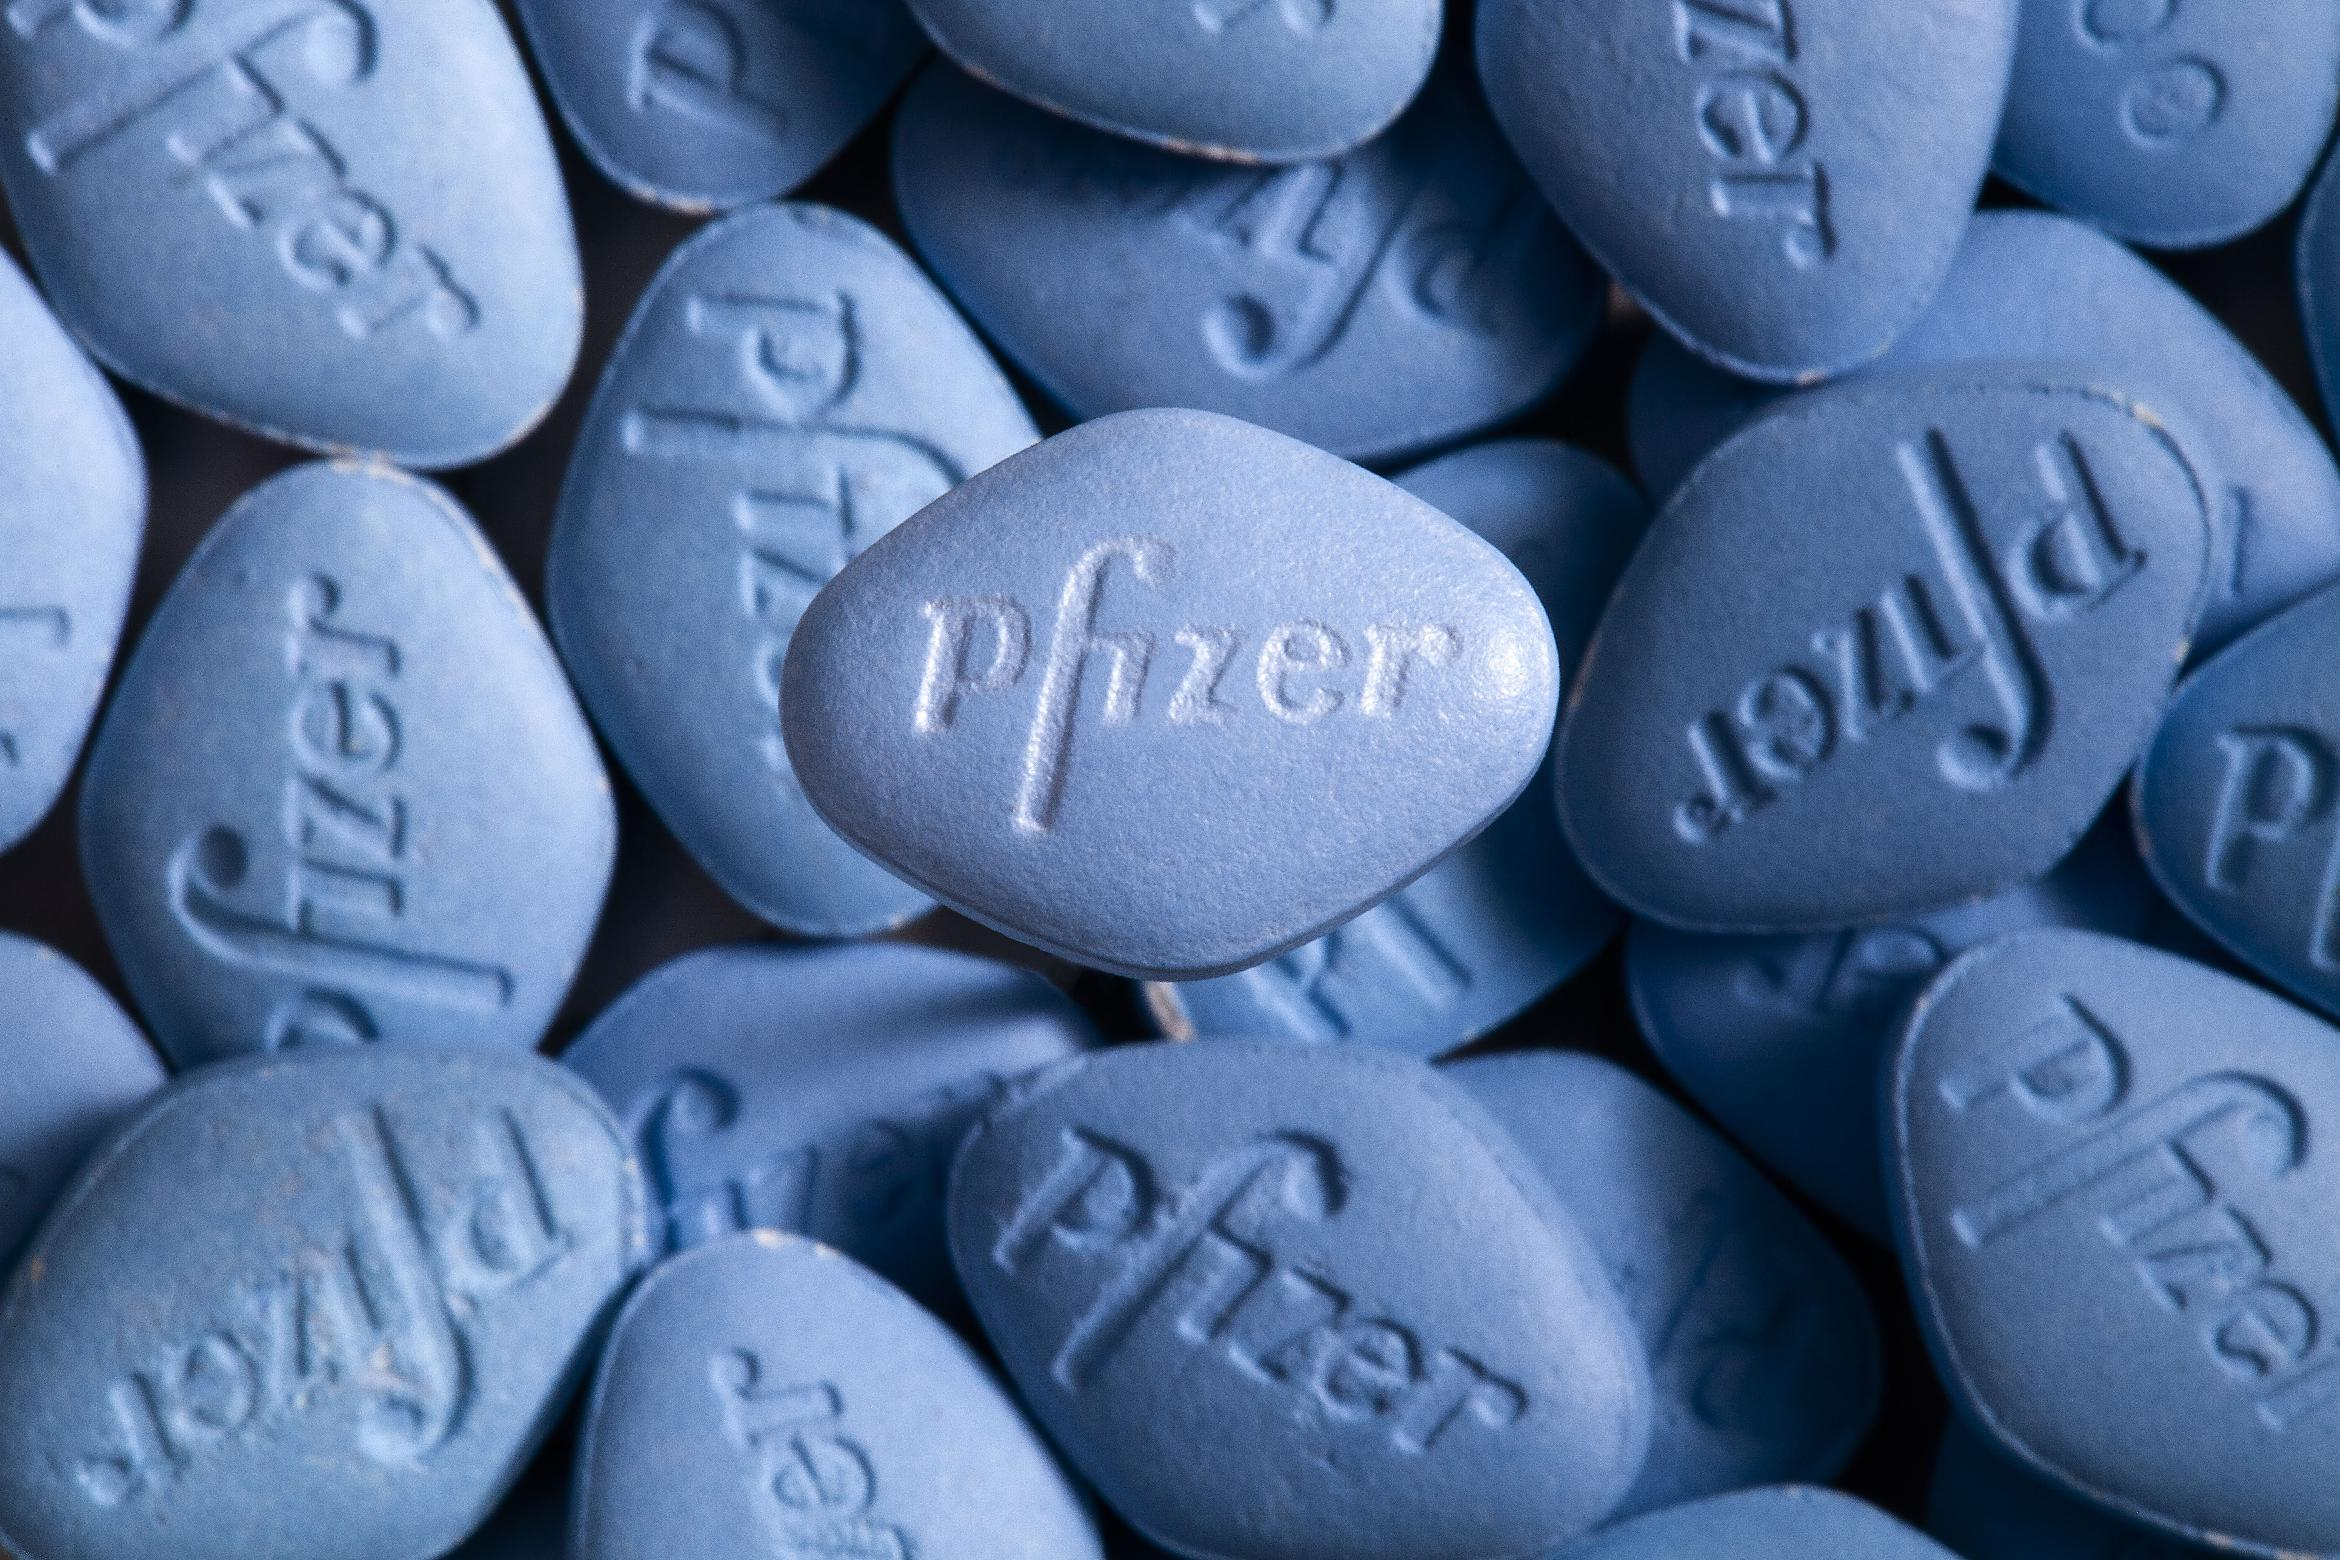 This undated photo provided by pfizer shows a real Viagra pill on top of counterfeit pills. In a first for the drug industry, Pfizer Inc. told The Associated Press on May 6, 2013, that it will sell erectile dysfunction pill Viagra directly to patients on its website. (AP Photo/pfizer, William Vazquez)